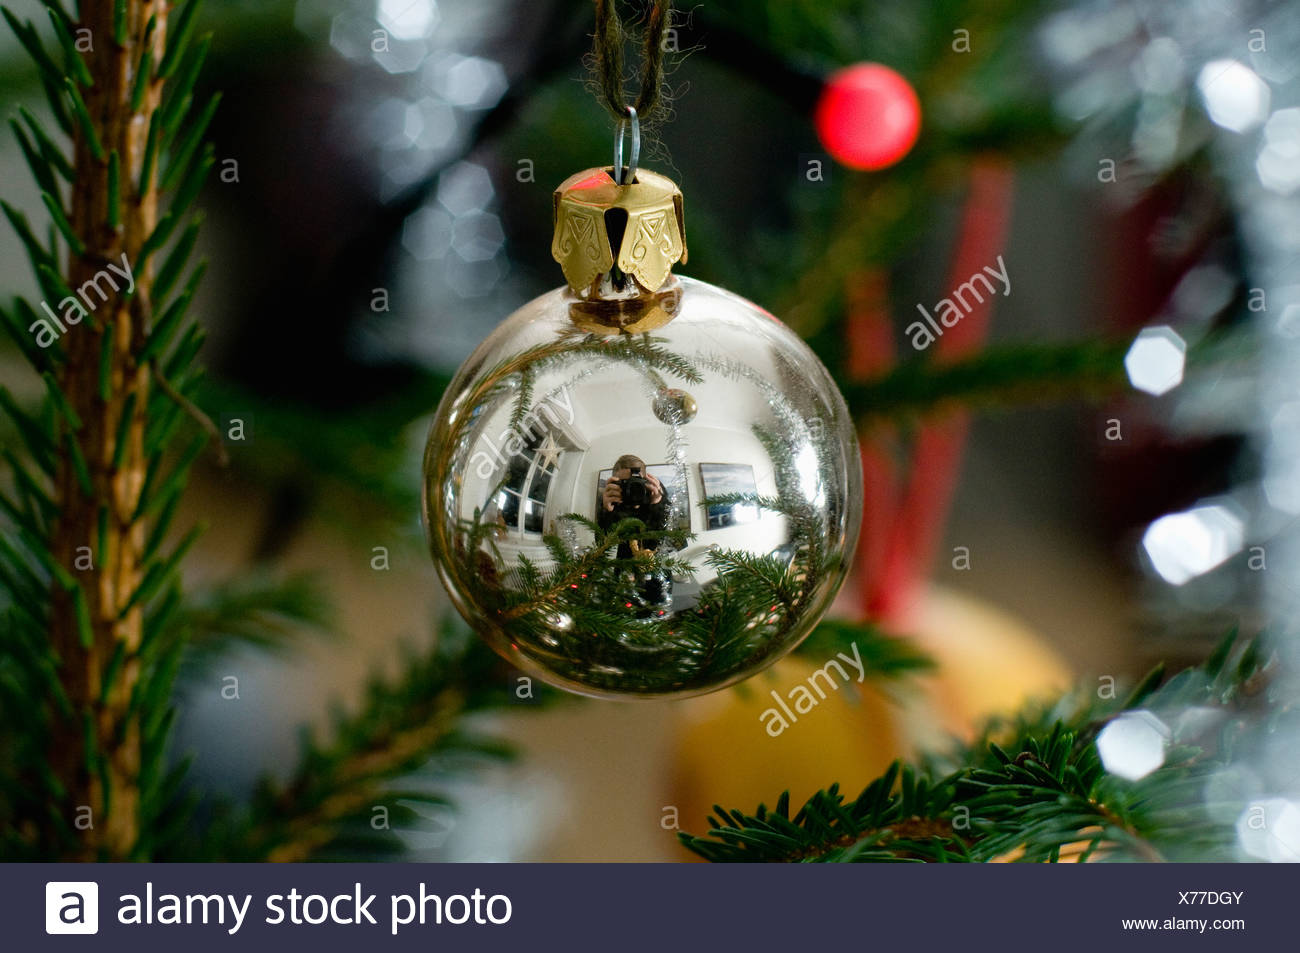 Reflection of photographer on Christmas ball - Stock Image